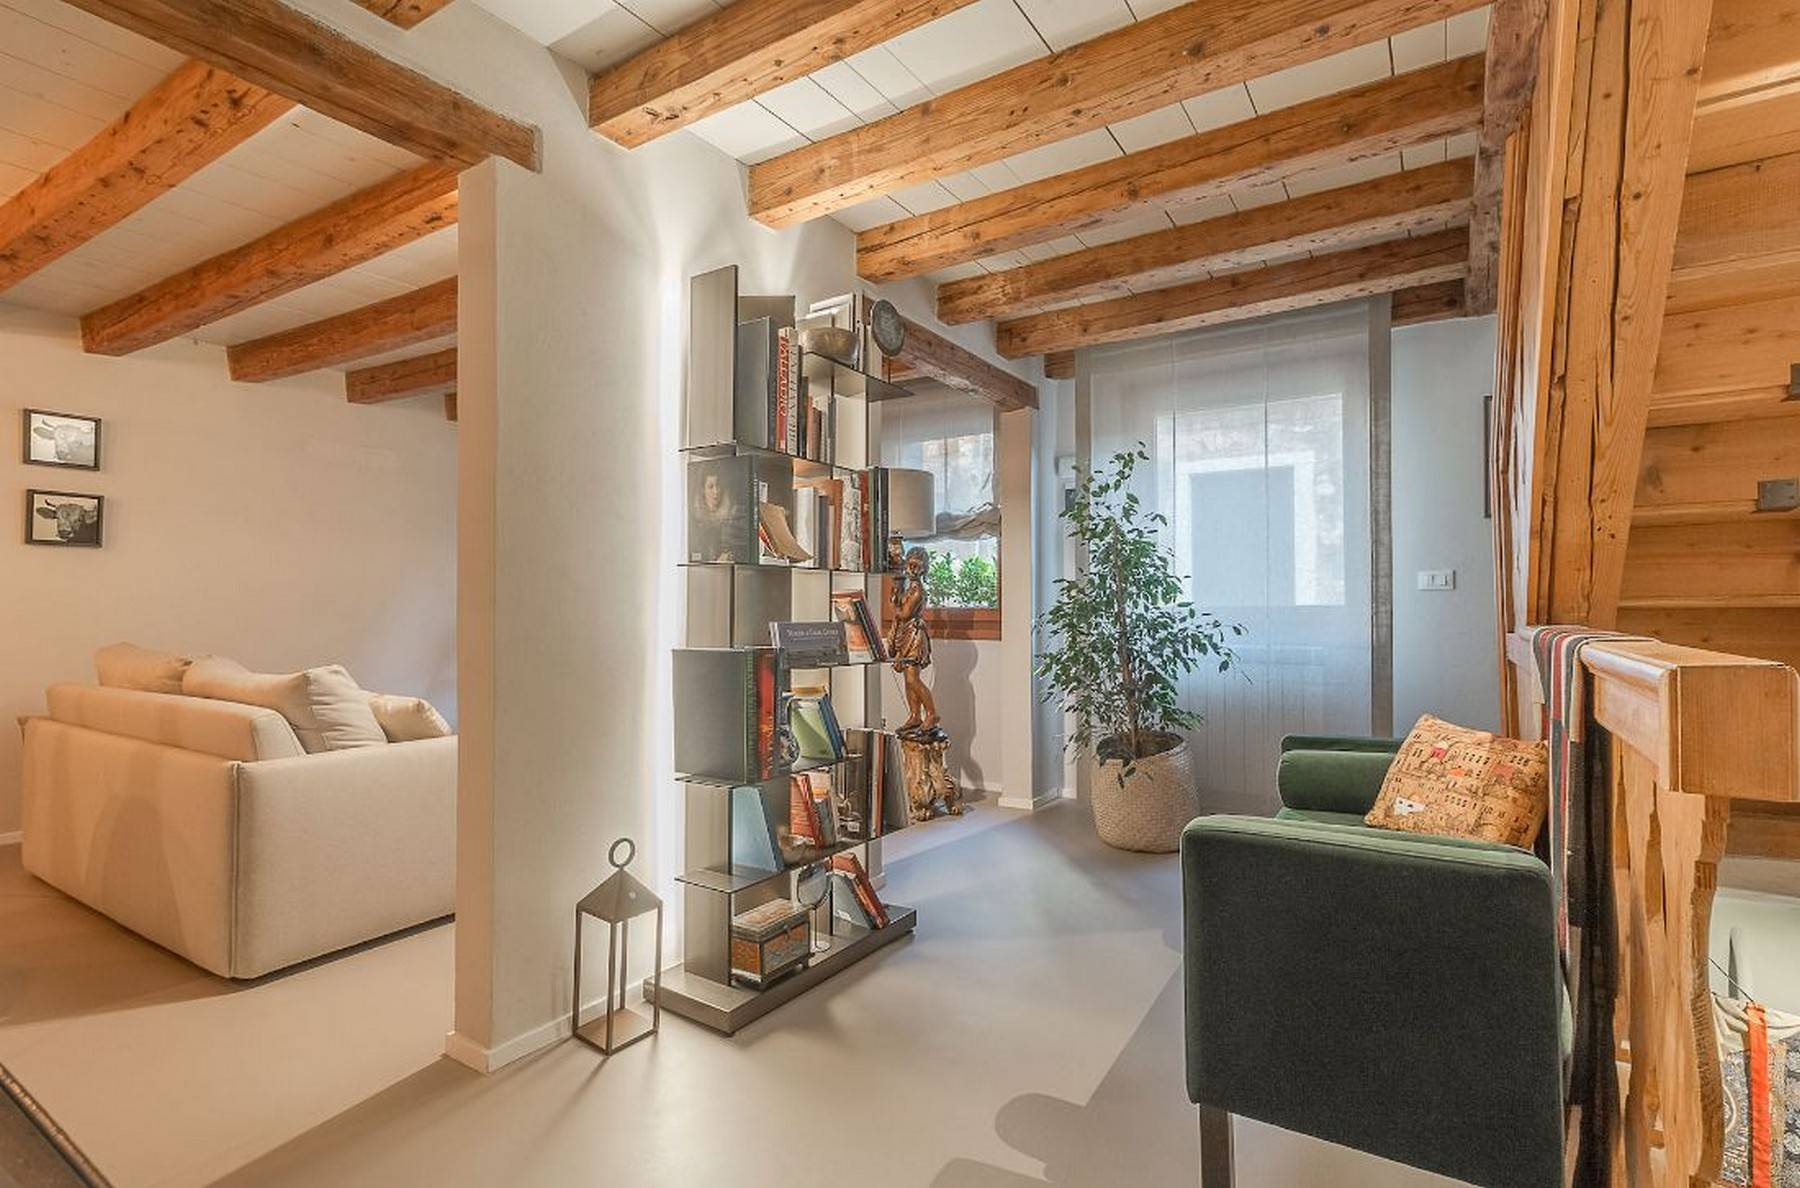 Castello design duplex with charming roof terrace - 5